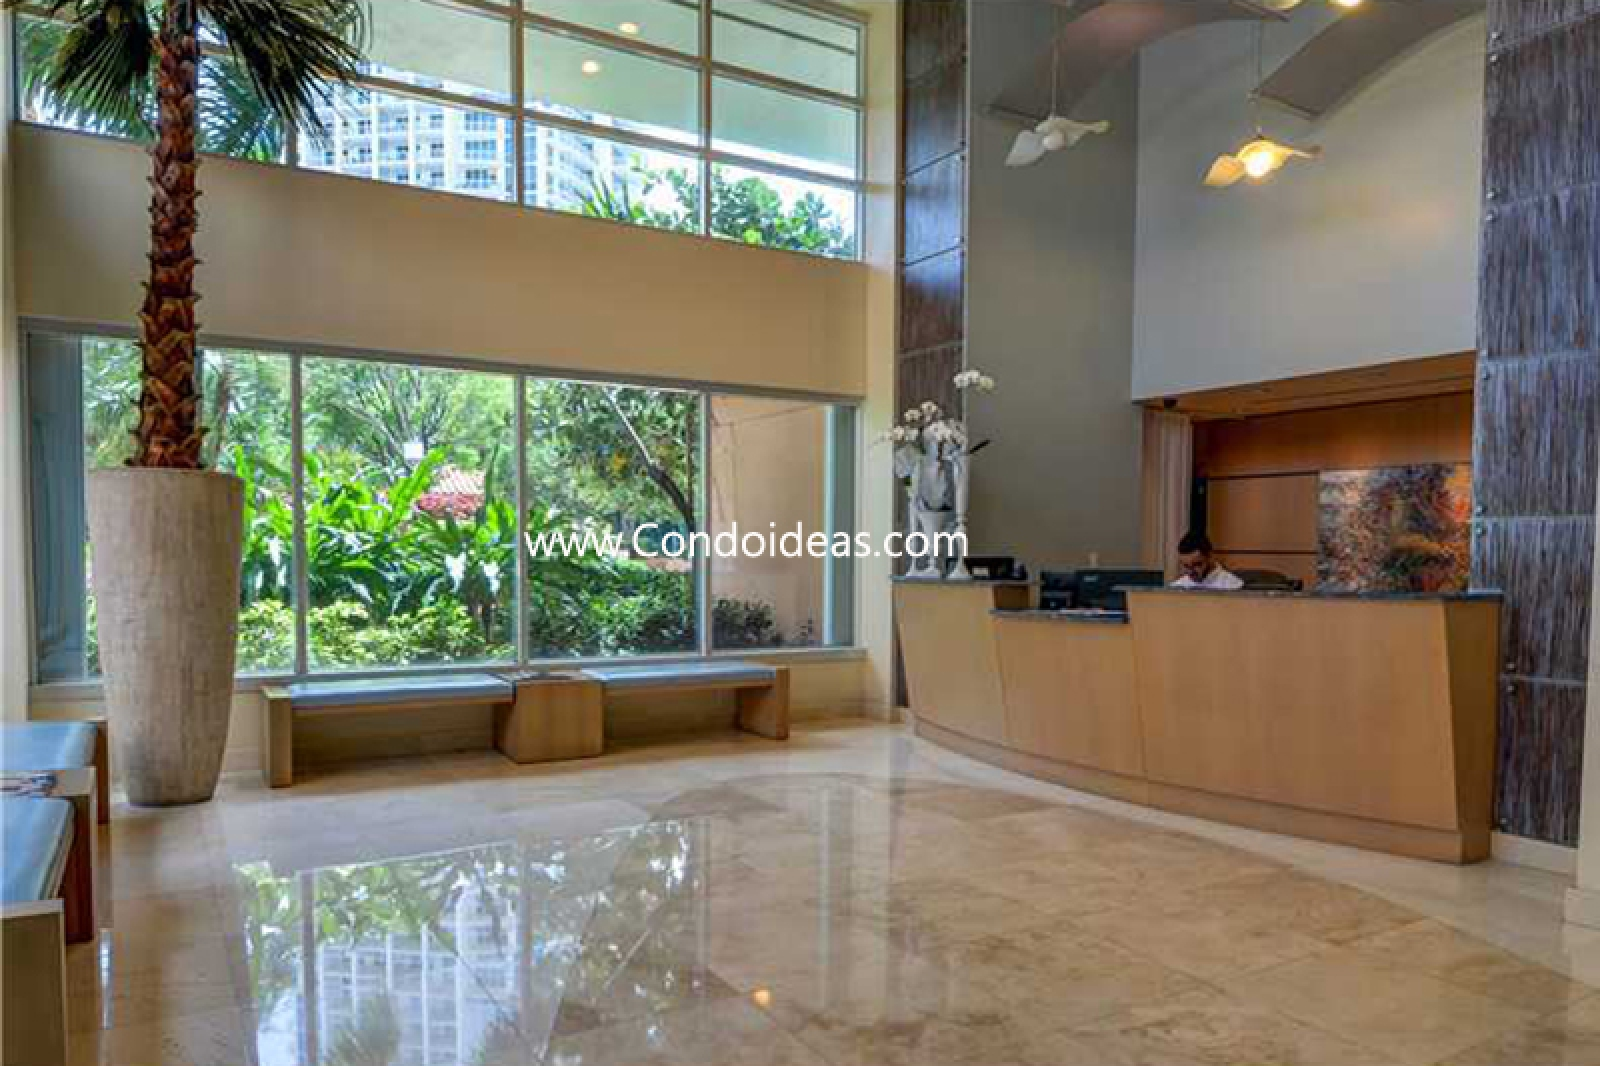 South Pointe Tower condo